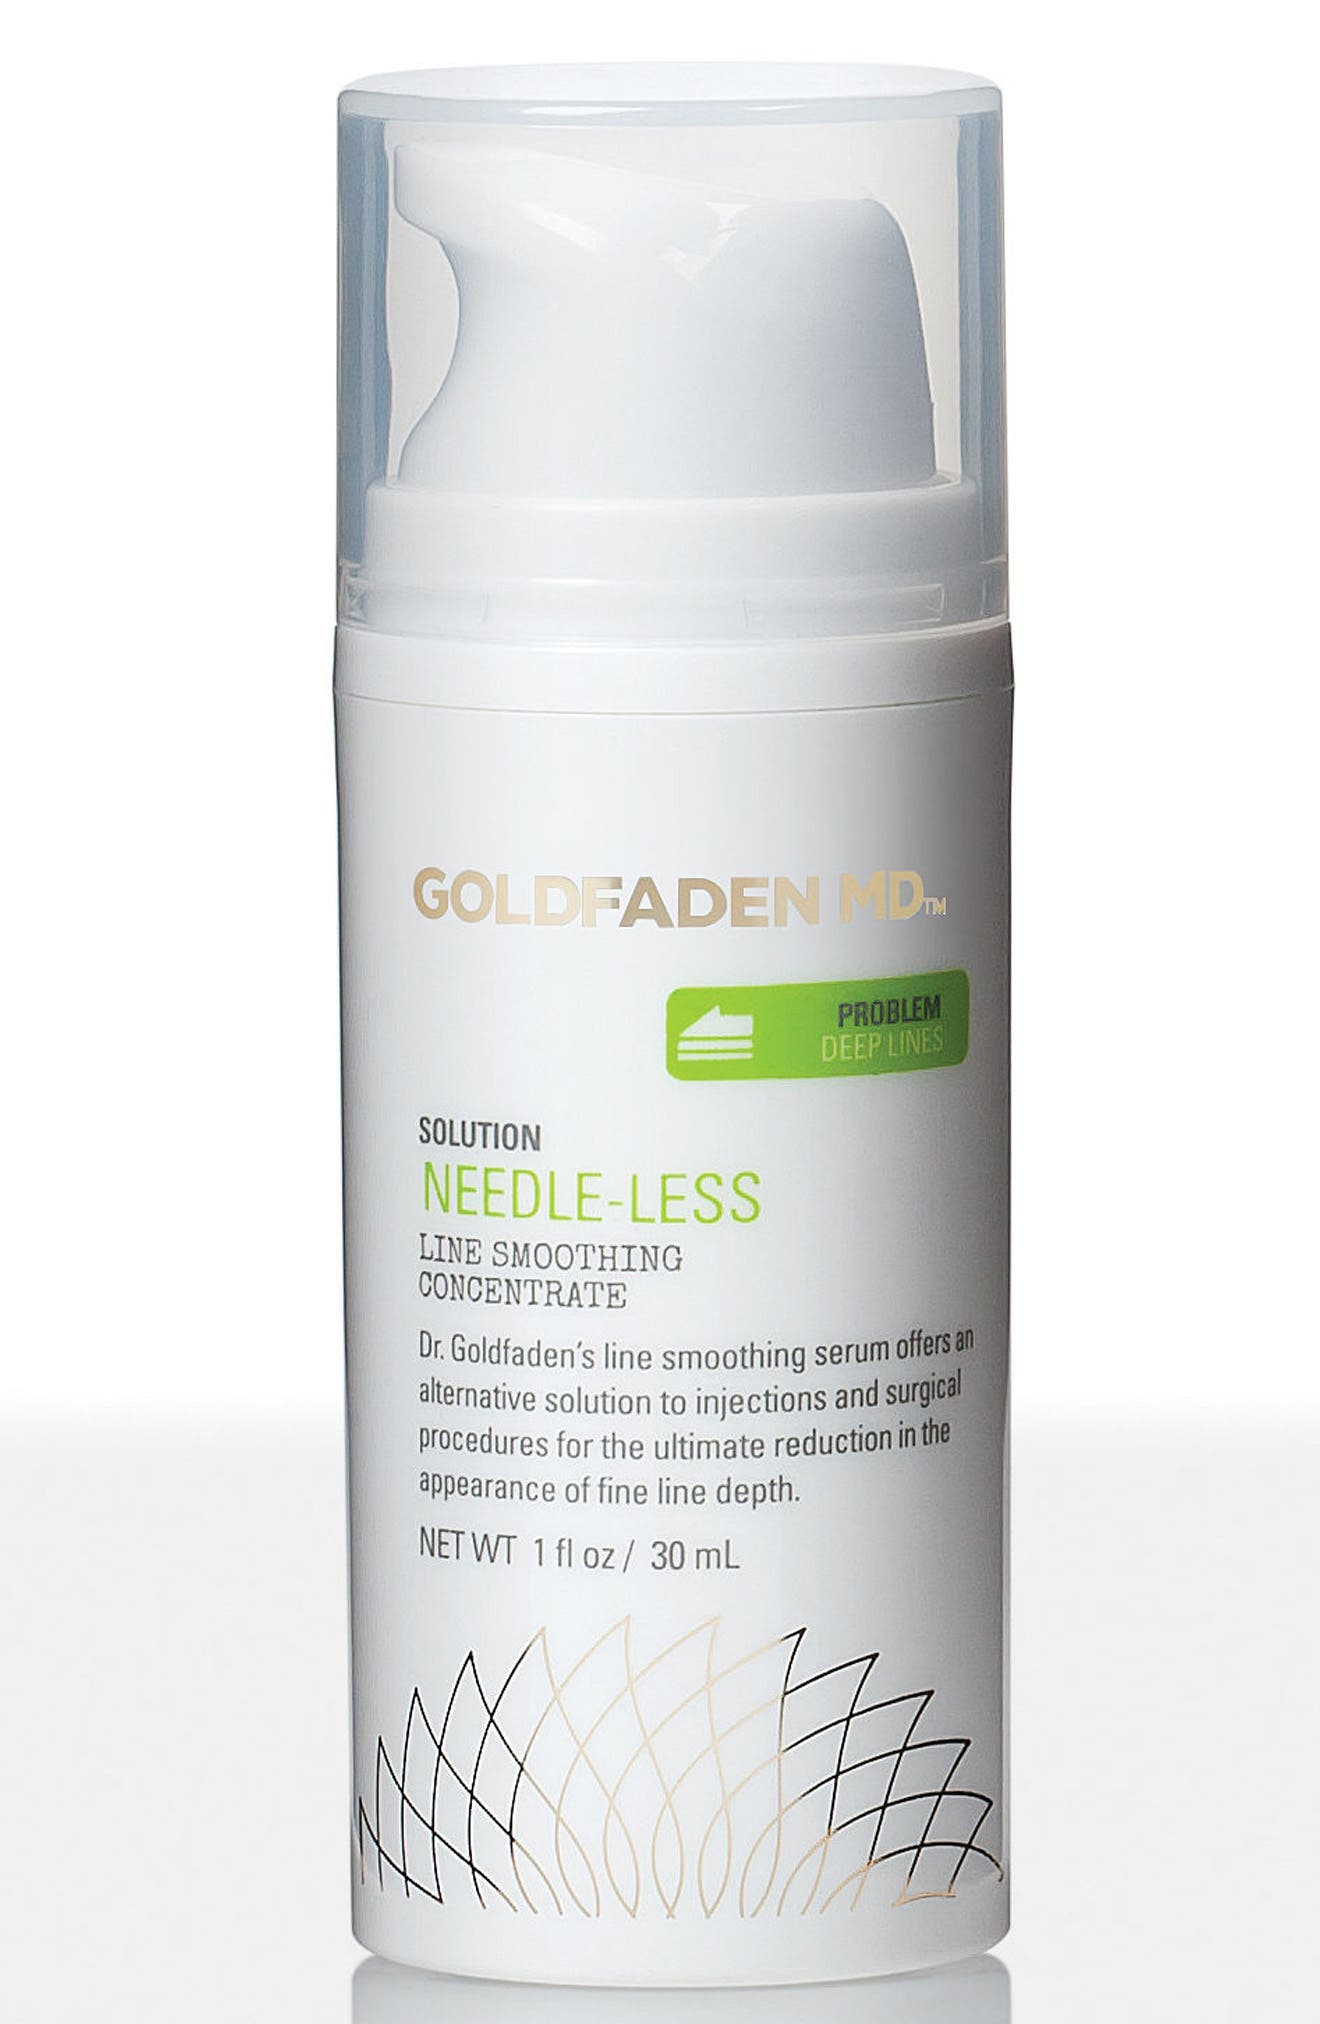 SPACE.NK.apothecary Goldfaden MD Needle-Less Line Smoothing Concentrate,                             Alternate thumbnail 2, color,                             000